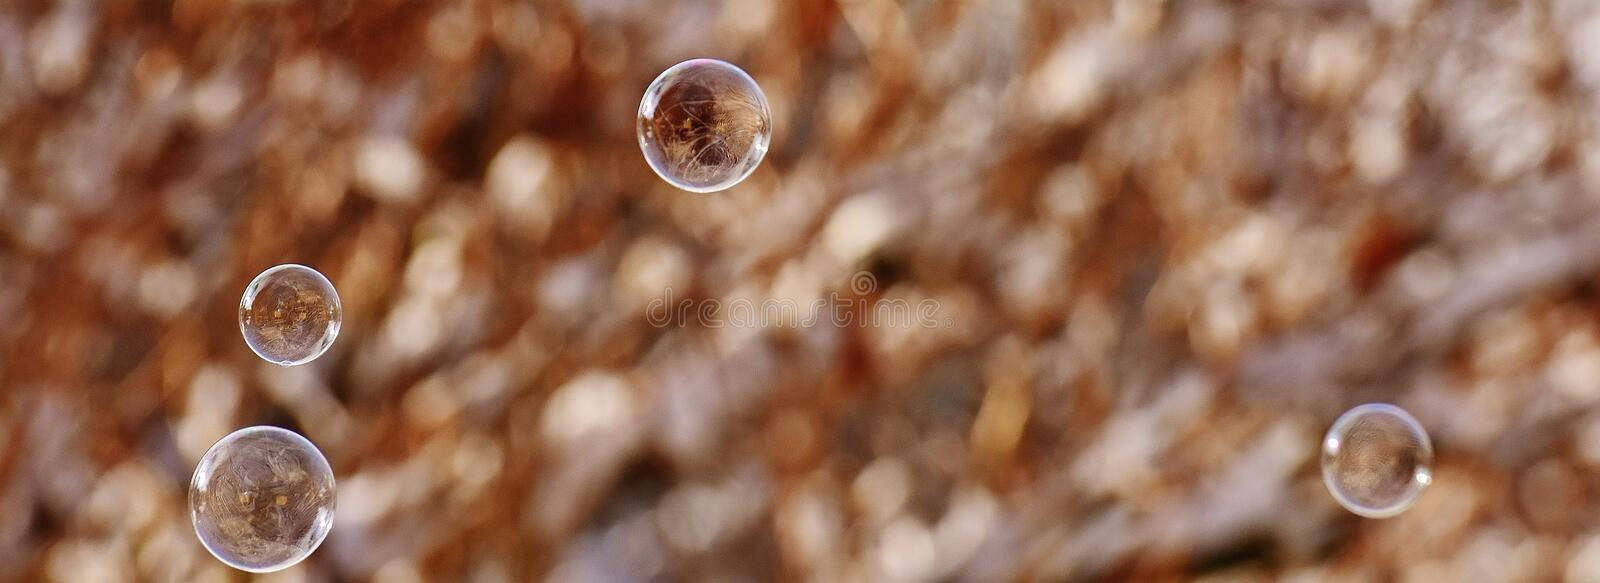 Water, Macro Photography, Close Up, Stock Photography royalty free stock photos